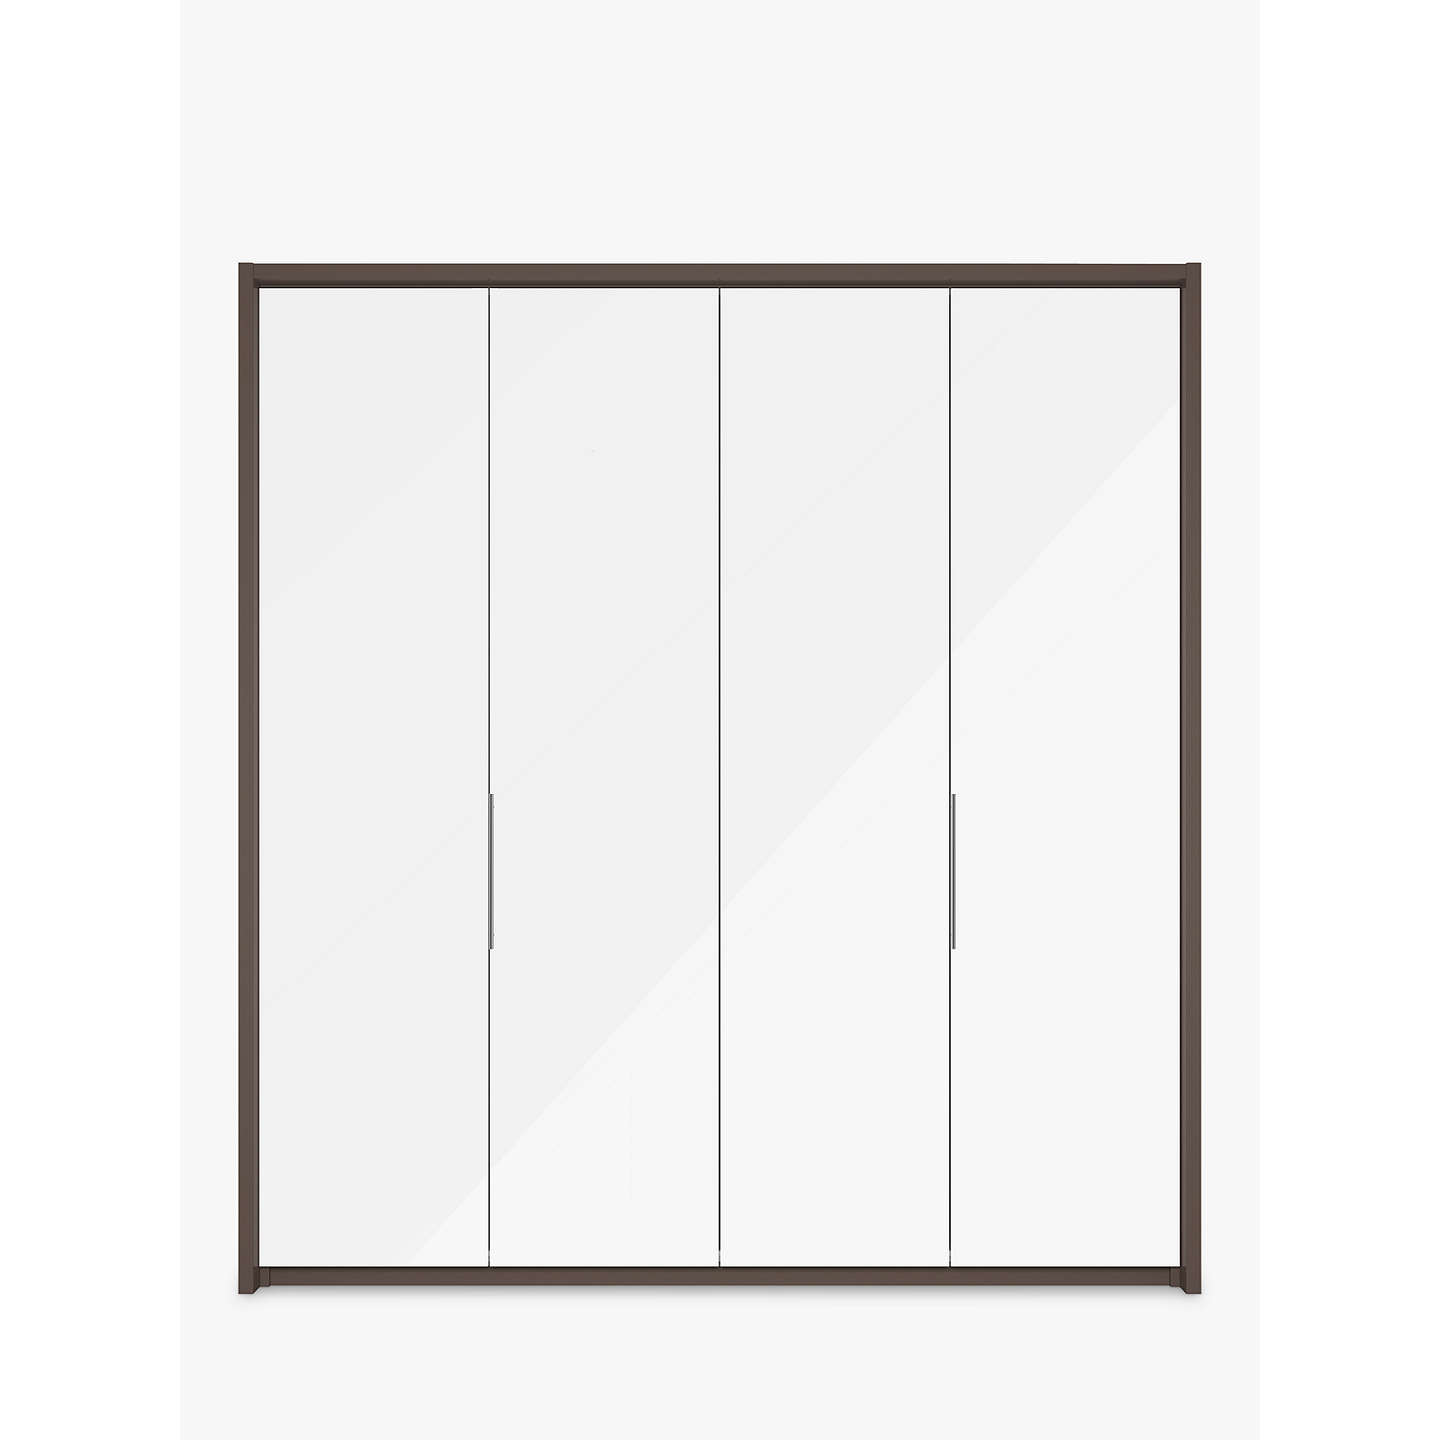 john lewis girona 200cm wardrobe with glass or mirrored. Black Bedroom Furniture Sets. Home Design Ideas